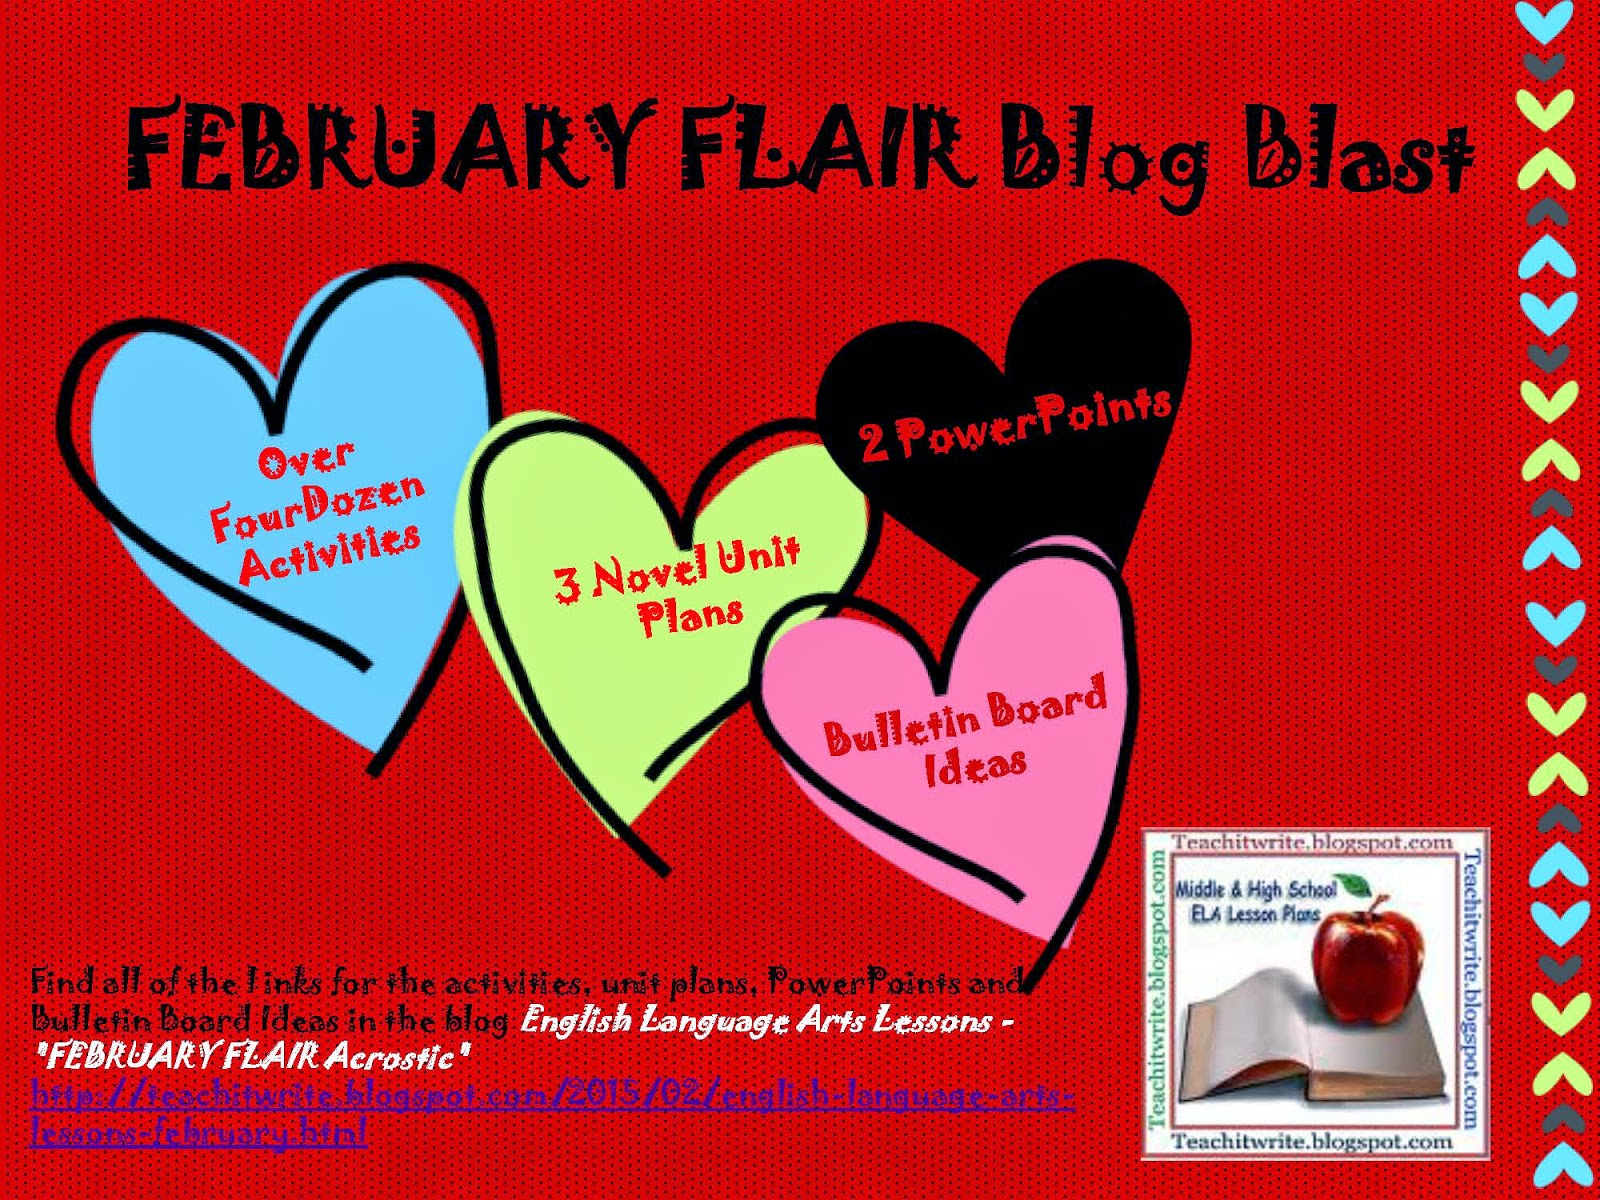 February Flair Blog Blast